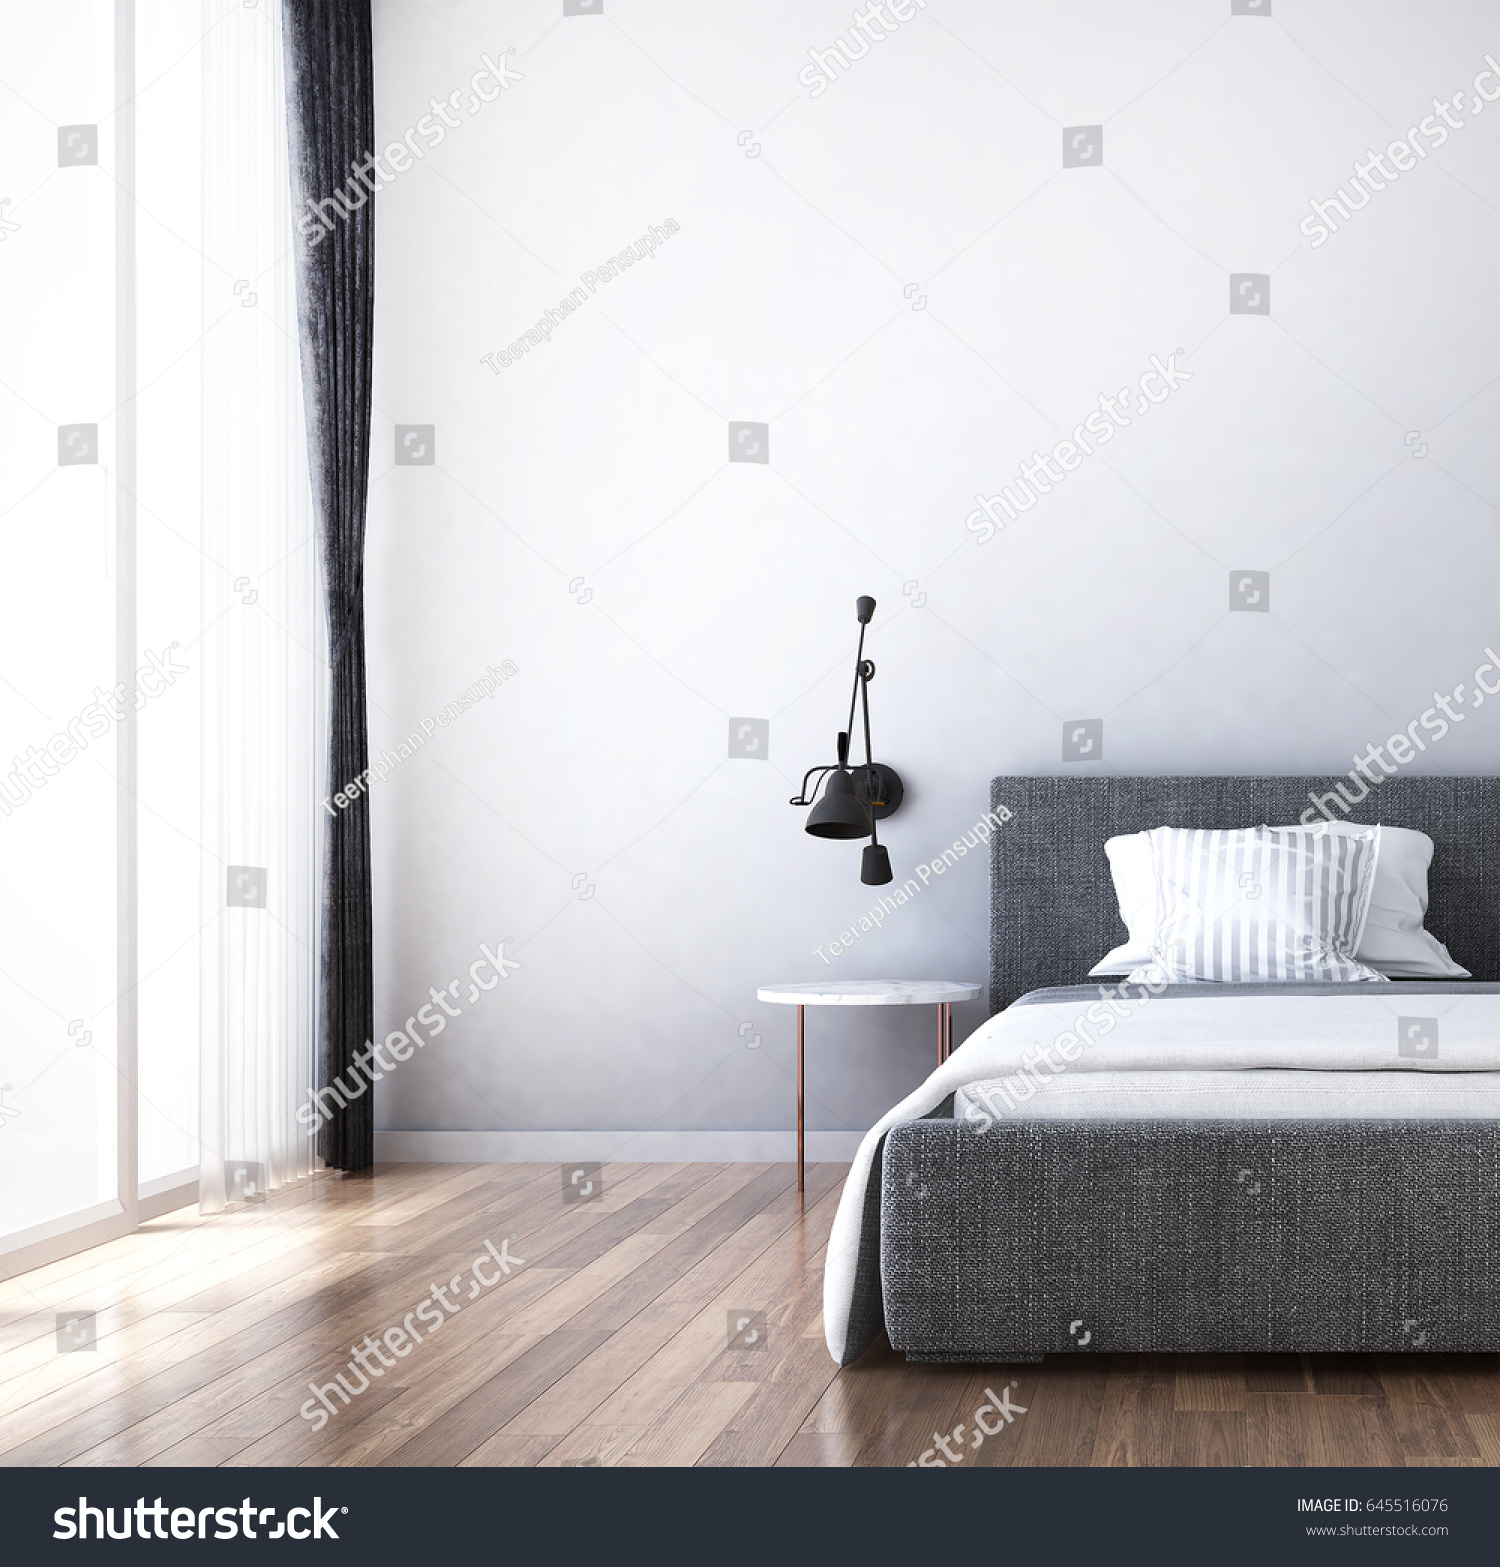 minimalist design with marvelous ideas home dead gorgeous inspiration drop what beautiful bedroom images fleet mean for fantastic does together minimal vision bed